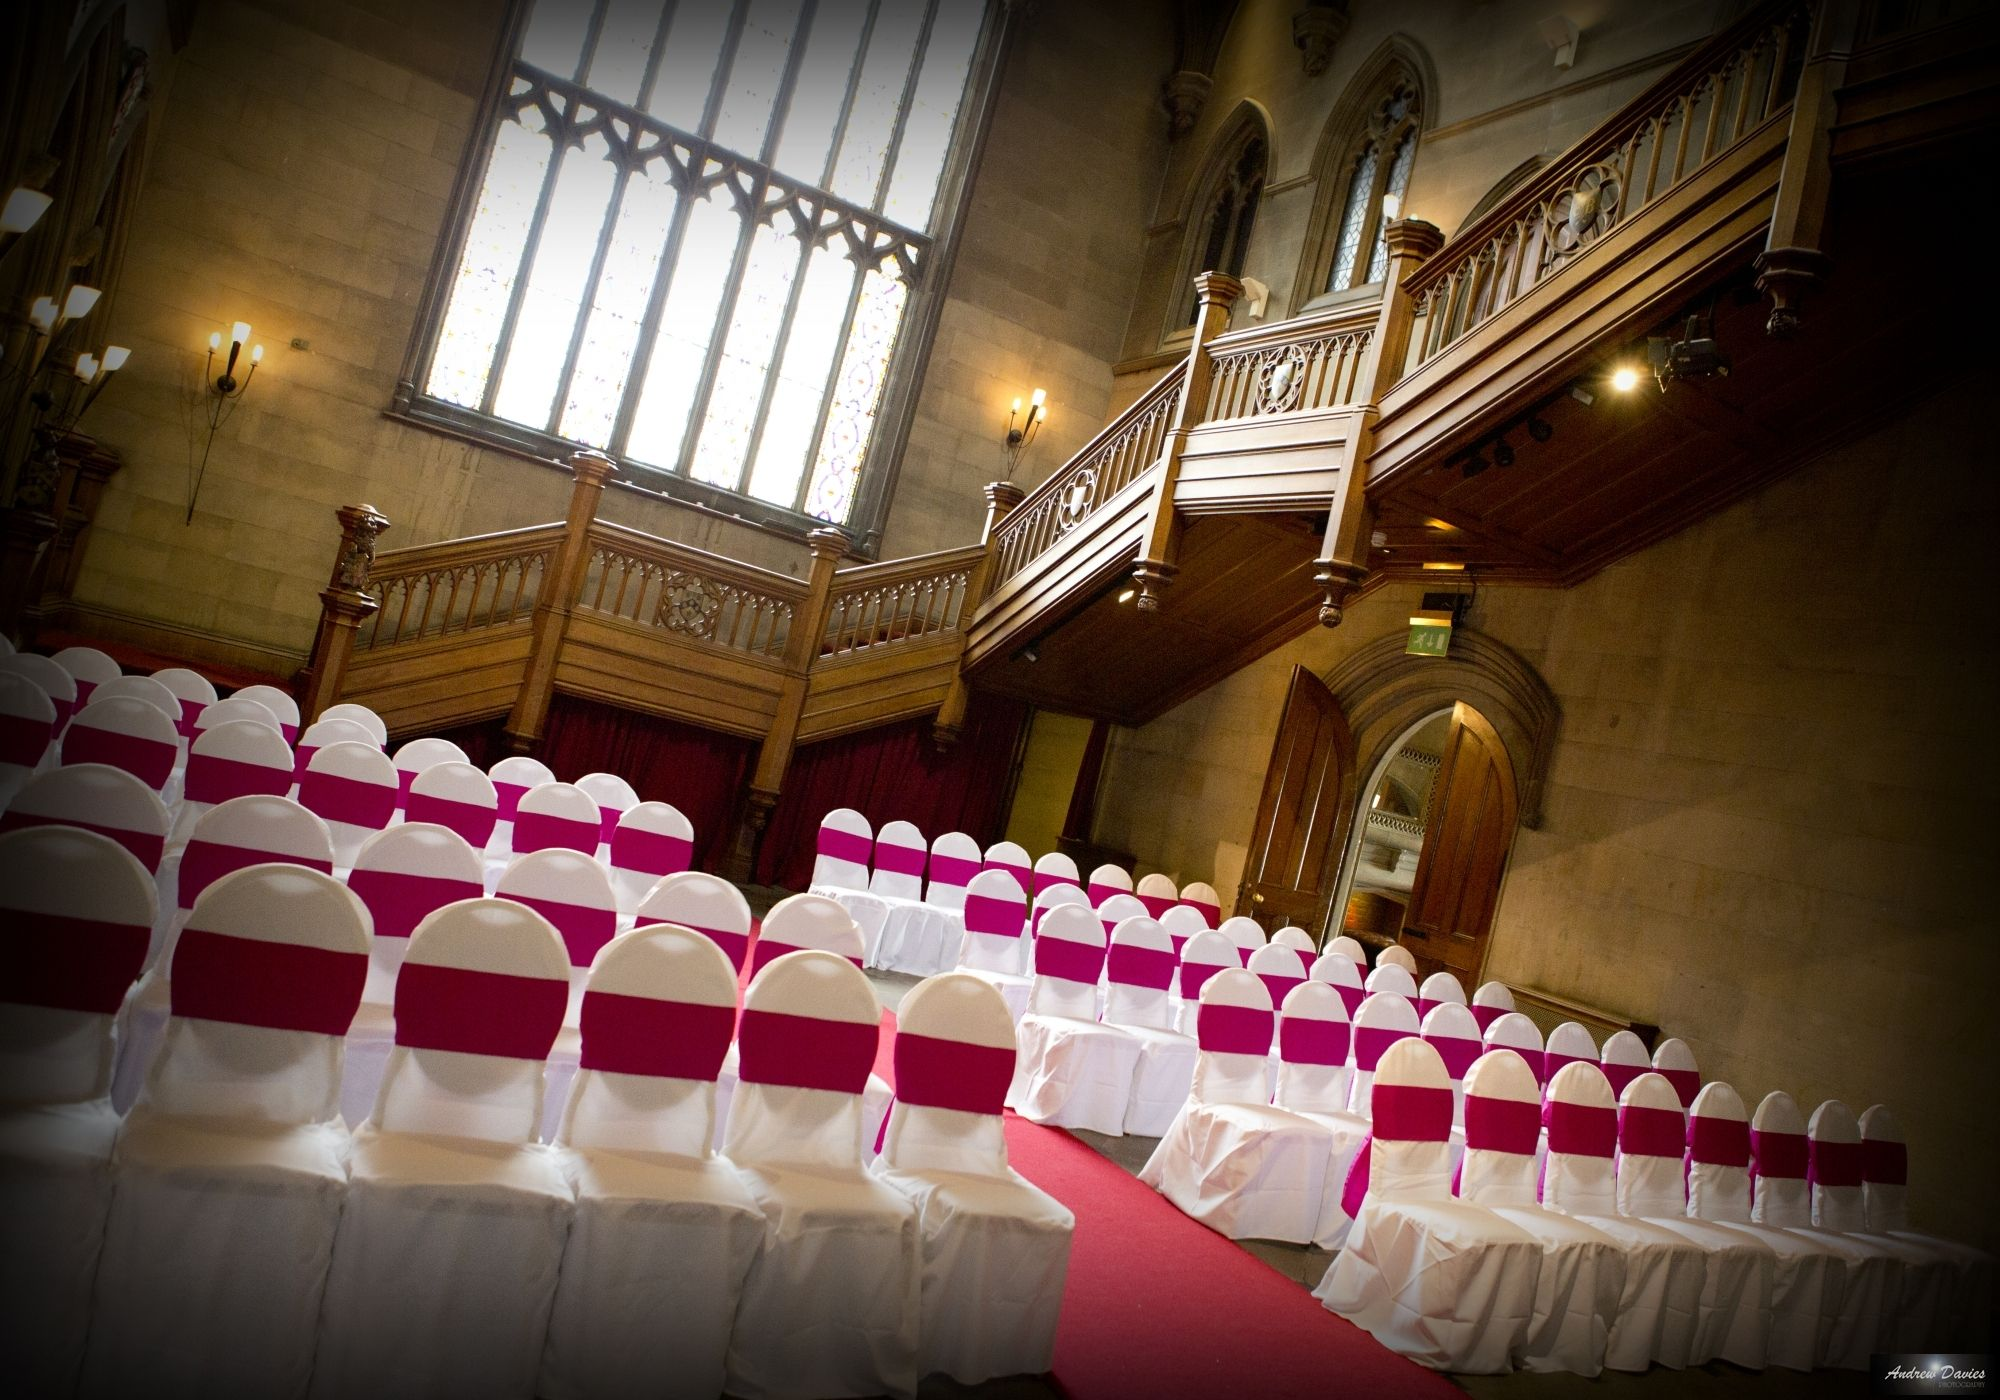 chair covers north east compact travel beach chairs magenta red pink matfen hall northumberland by teesside and middlesbrough wedding photographer www andrew davies com